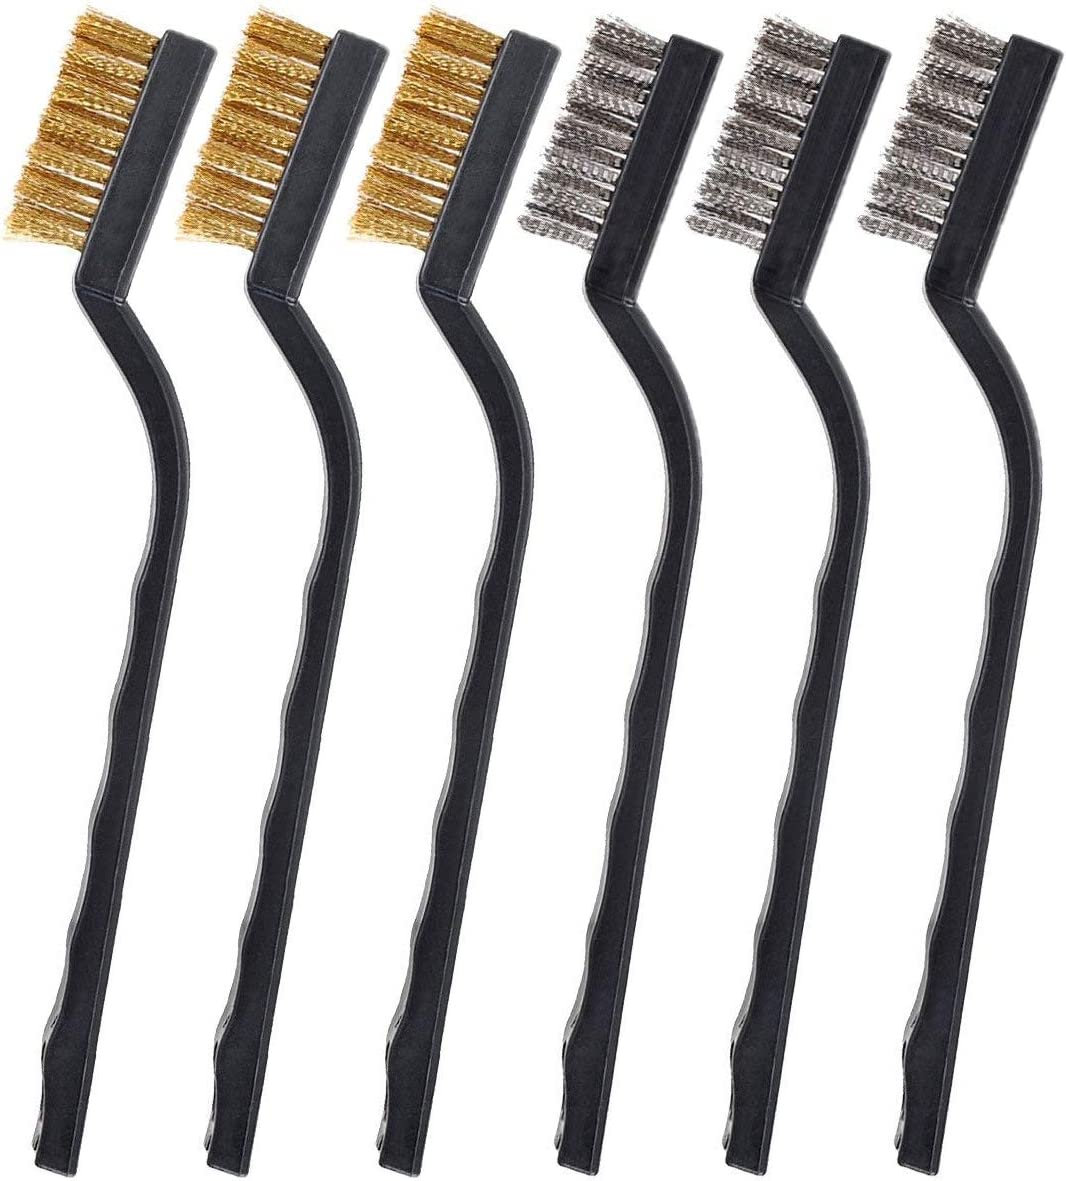 GWHOLE 6 Pcs Wire Brush Set for Cleaning Welding Slag and Rust Stainless Steel Brass and Nylon